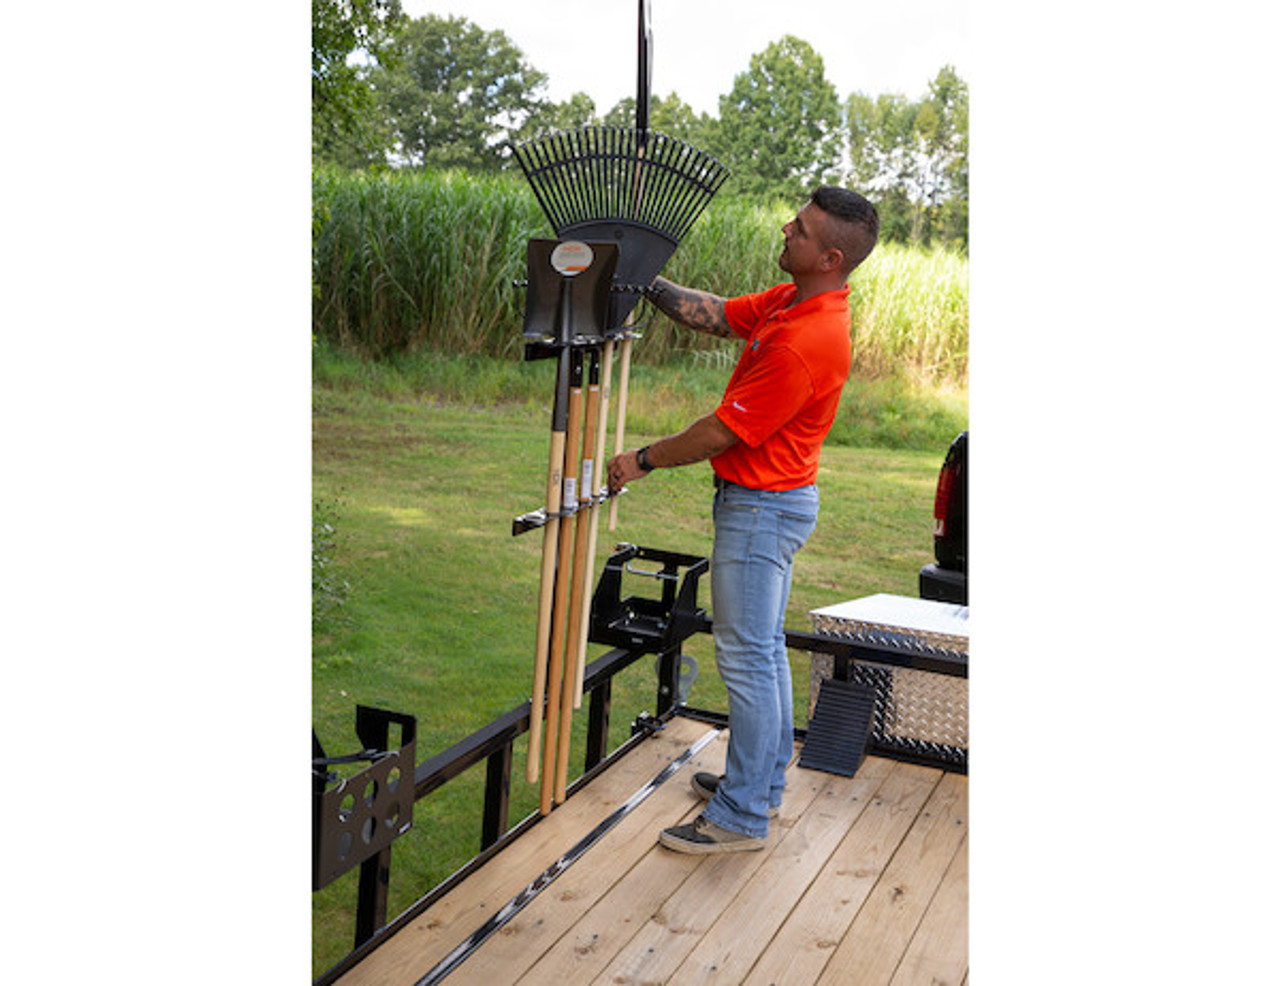 Buyers LT35 Vertical Hand Tool Rack for Landscaping Trailers, Garages, Sheds, Construction Vehicles Picture # 5